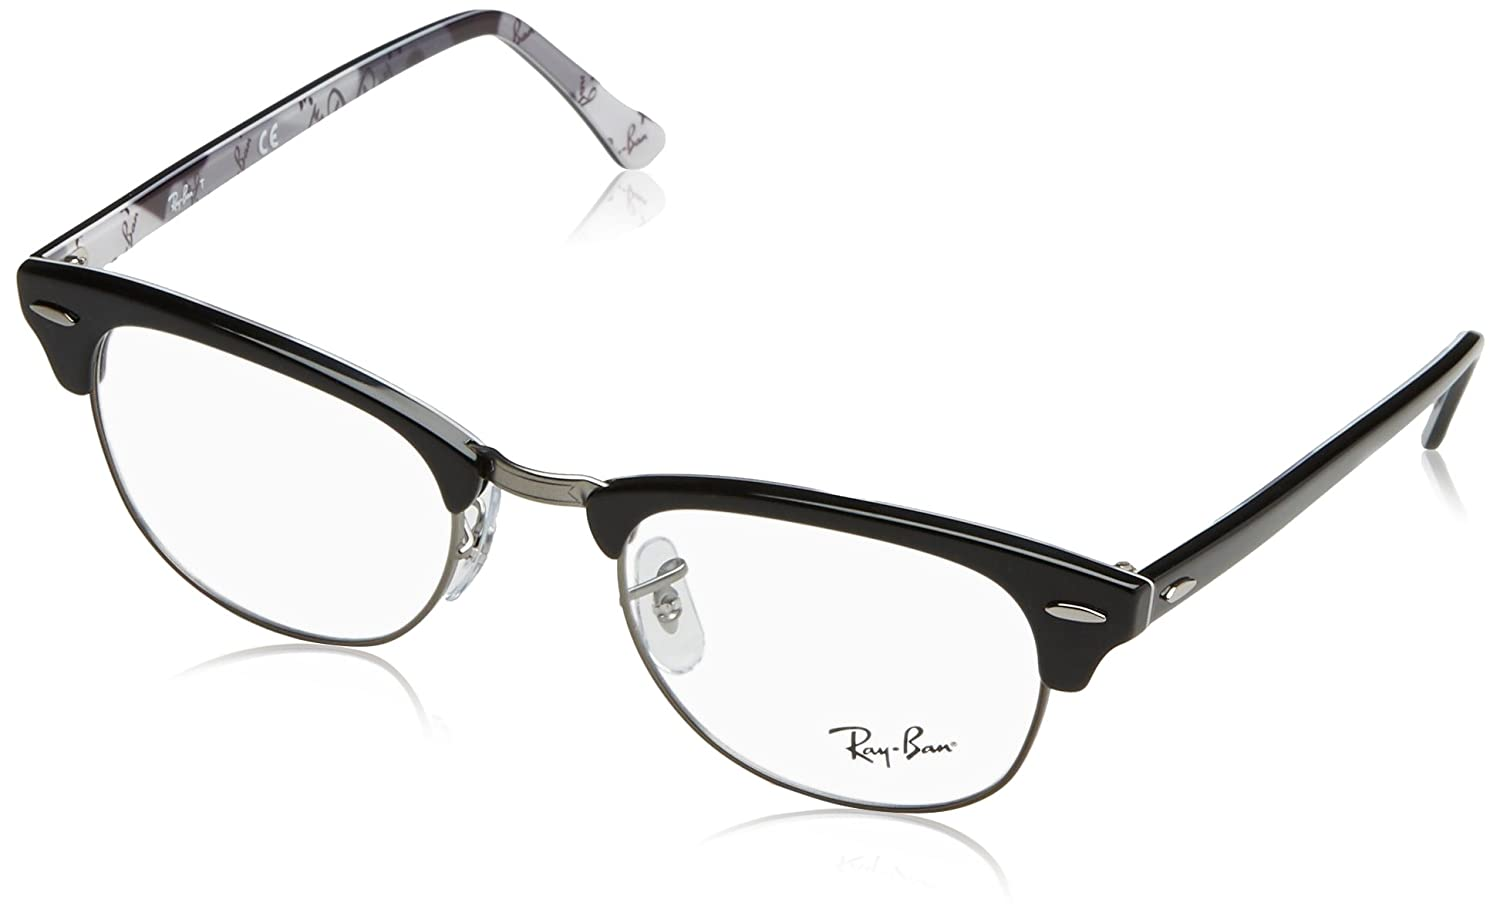 da7c8044e15 Amazon.com  Ray-Ban Clubmaster No Polarization Square Prescription Eyewear  Frame